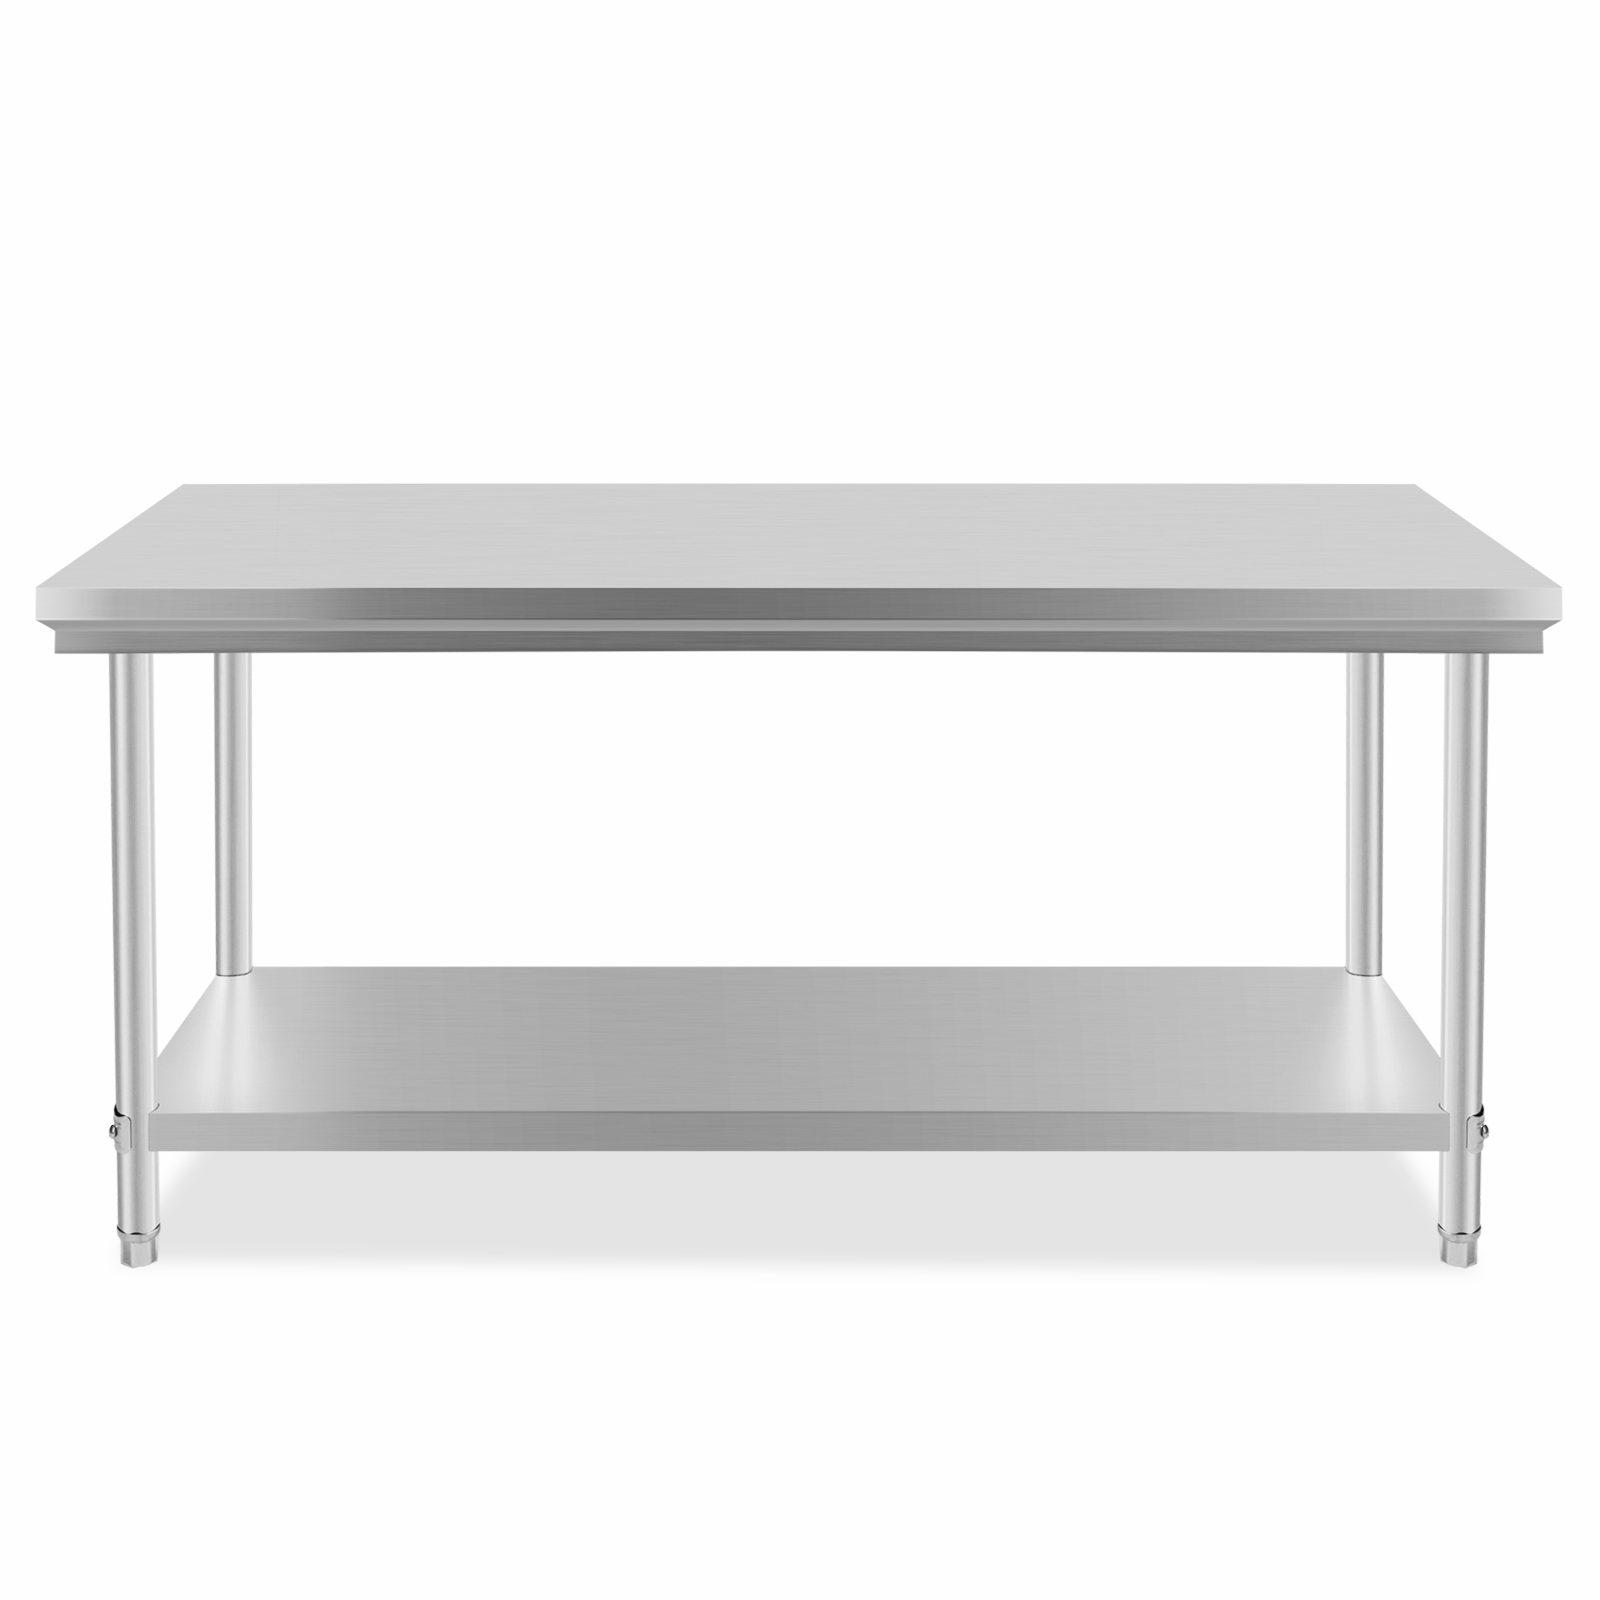 Commercial 201 Stainless Steel Kitchen Work Bench Food Prep Table Top 1829x762mm Ebay